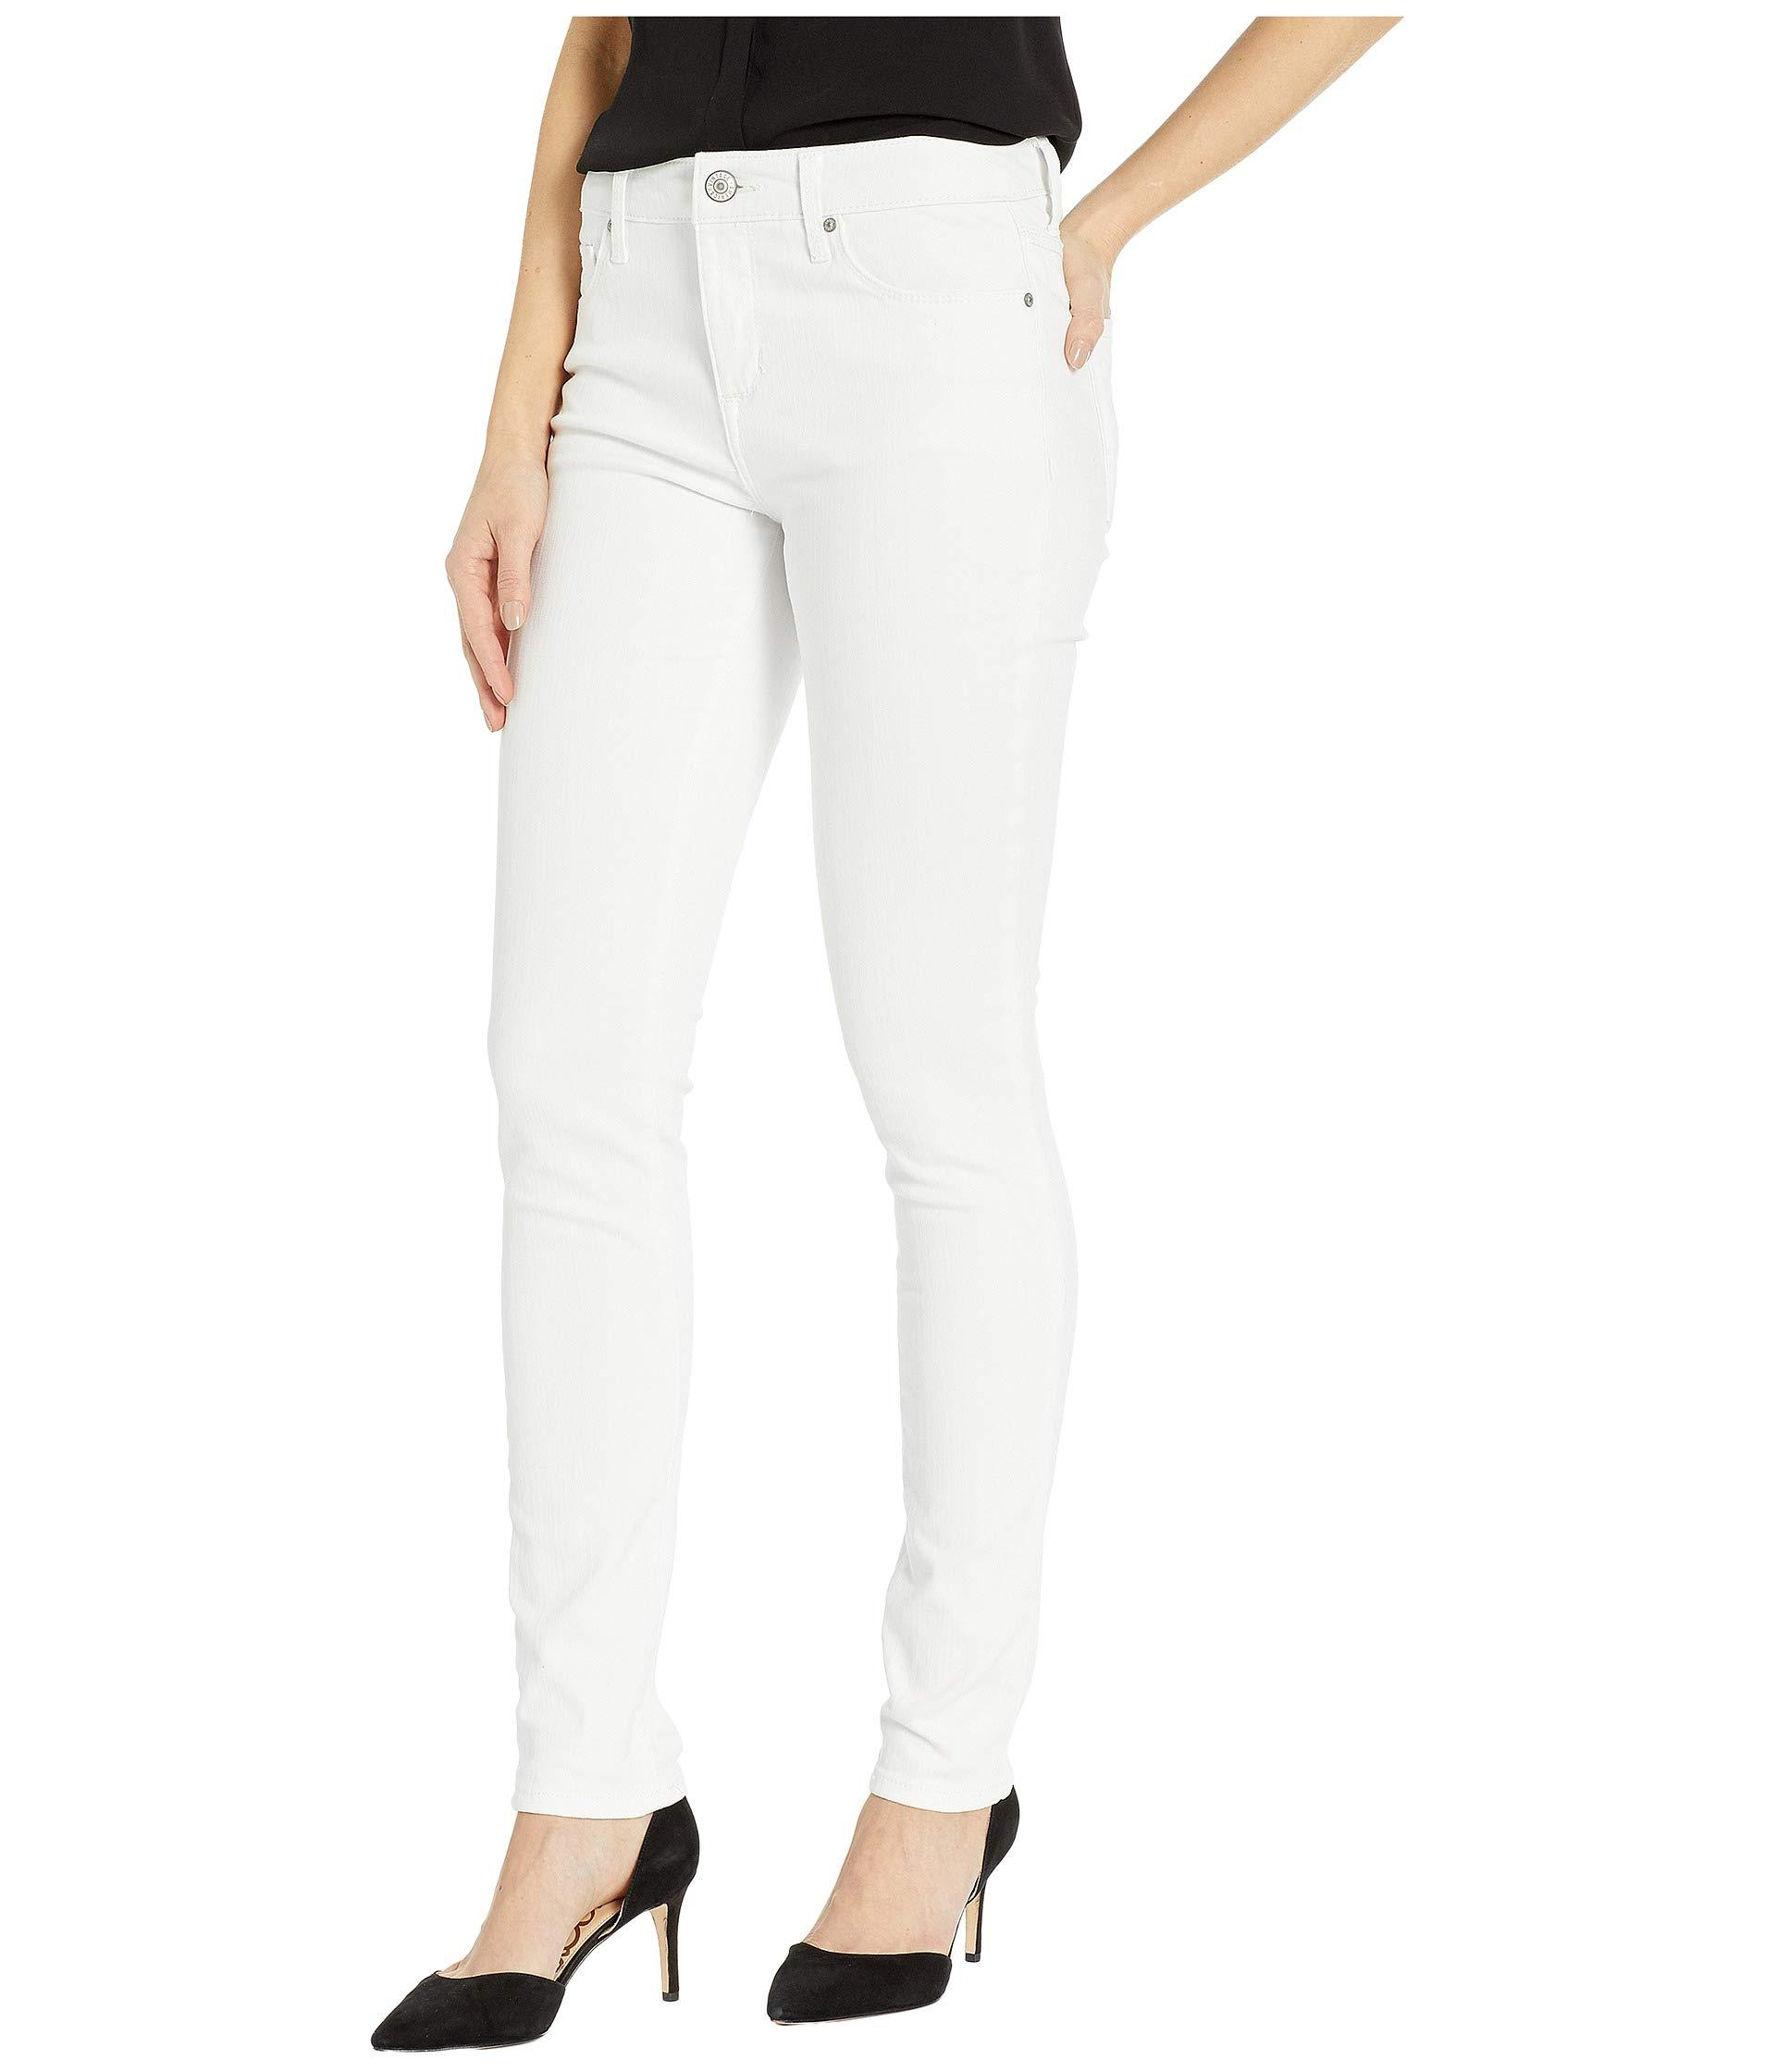 d9cc487964a Lyst - Vintage America Wonderland Skinny Jeans In White (white) Women s  Jeans in White